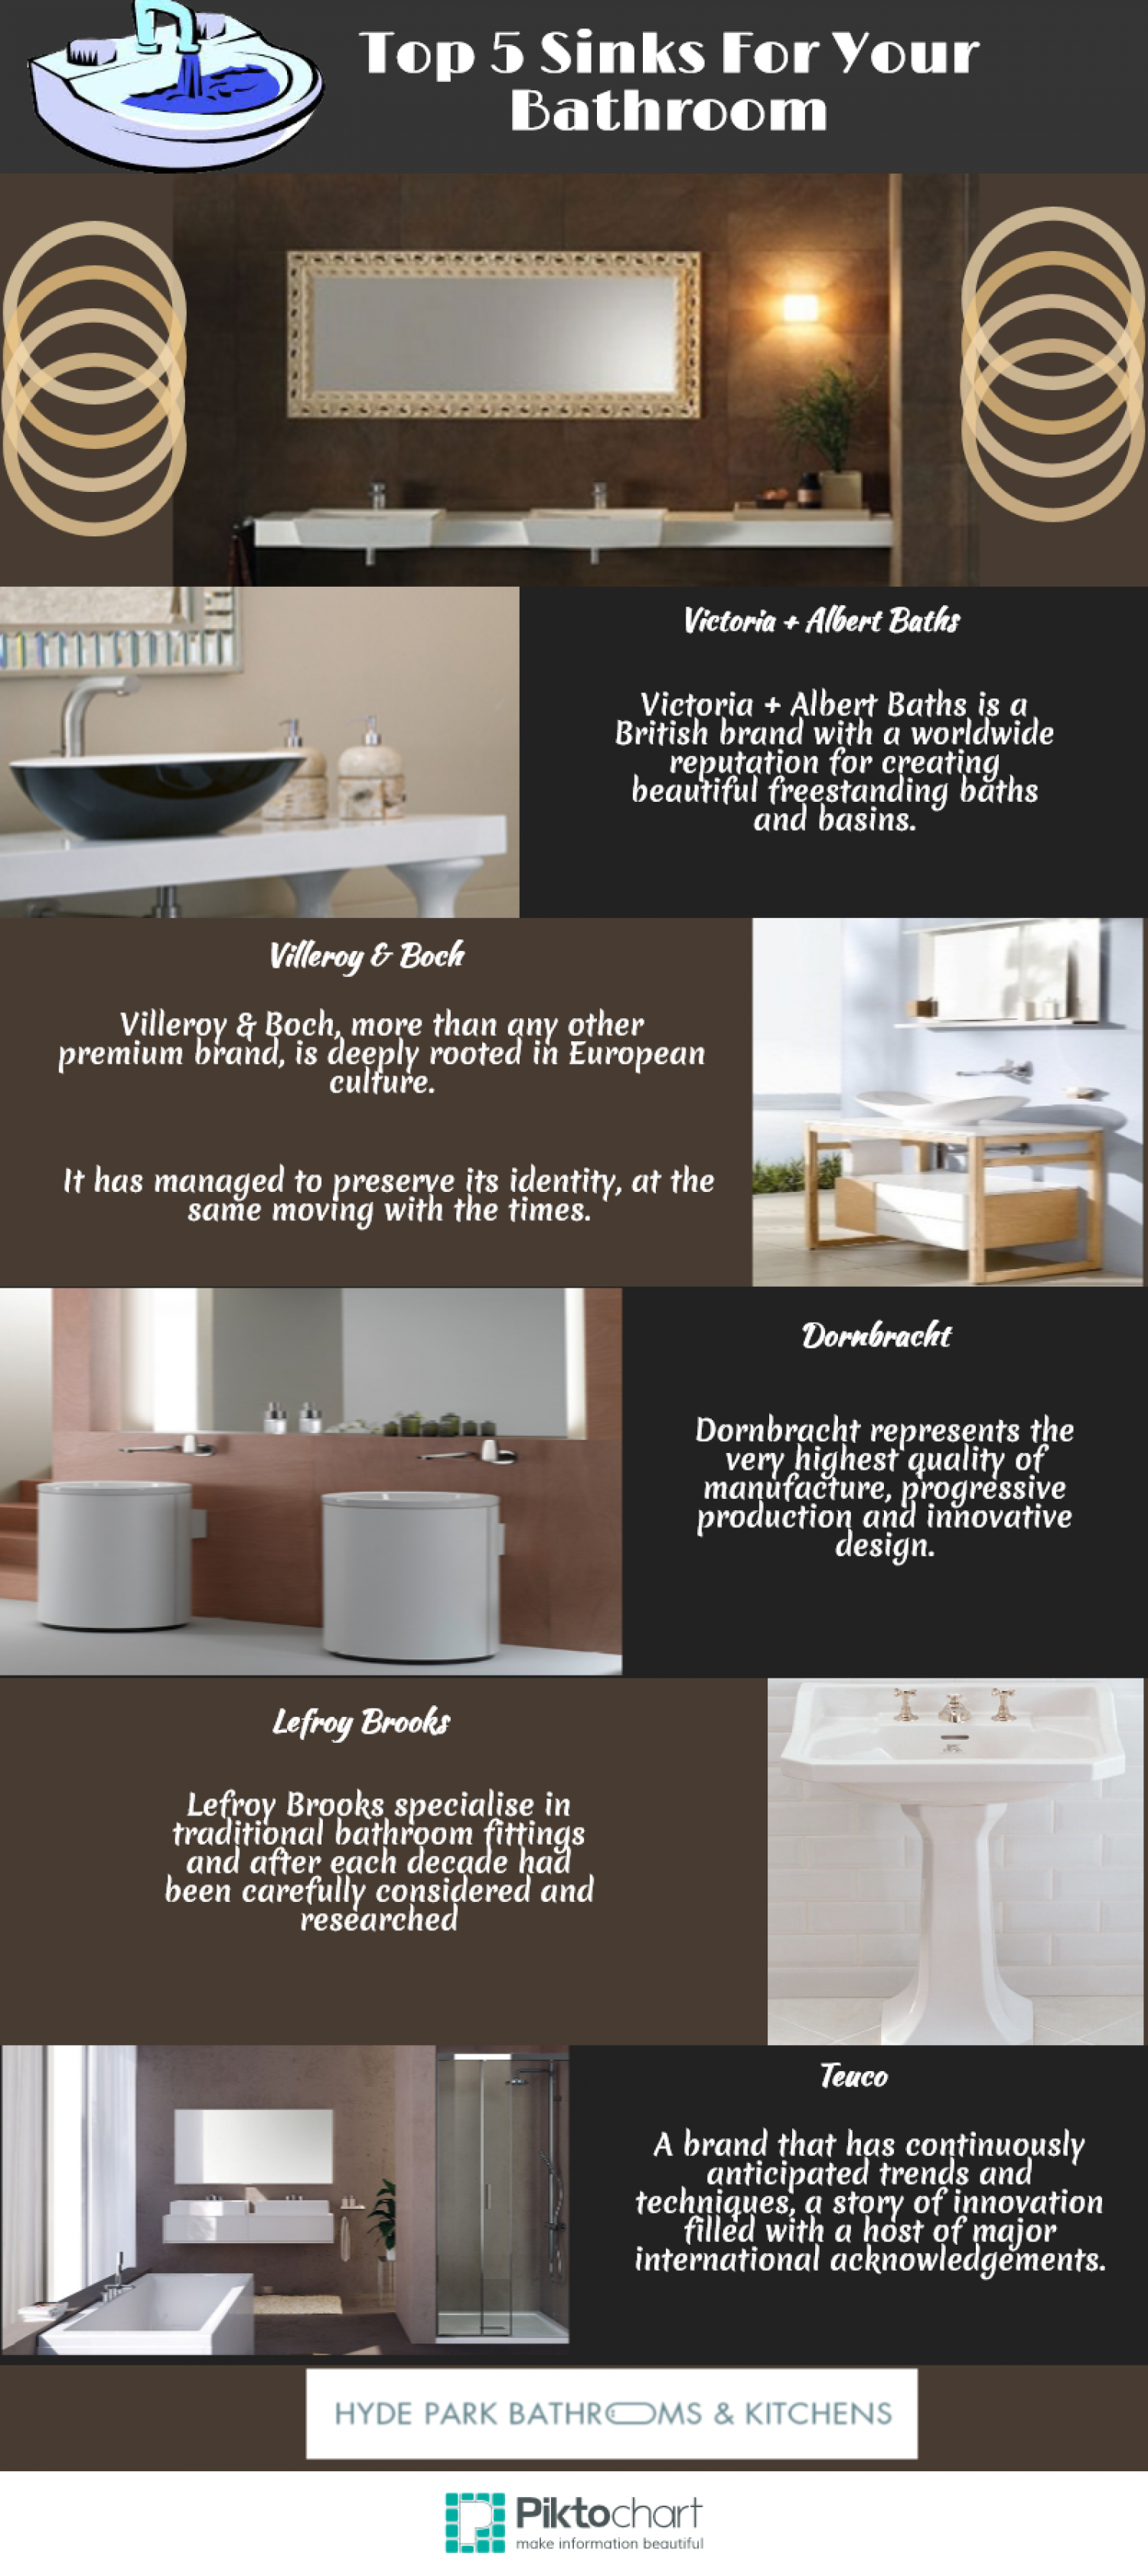 Top 5 Sinks For Your Bathroom Infographic